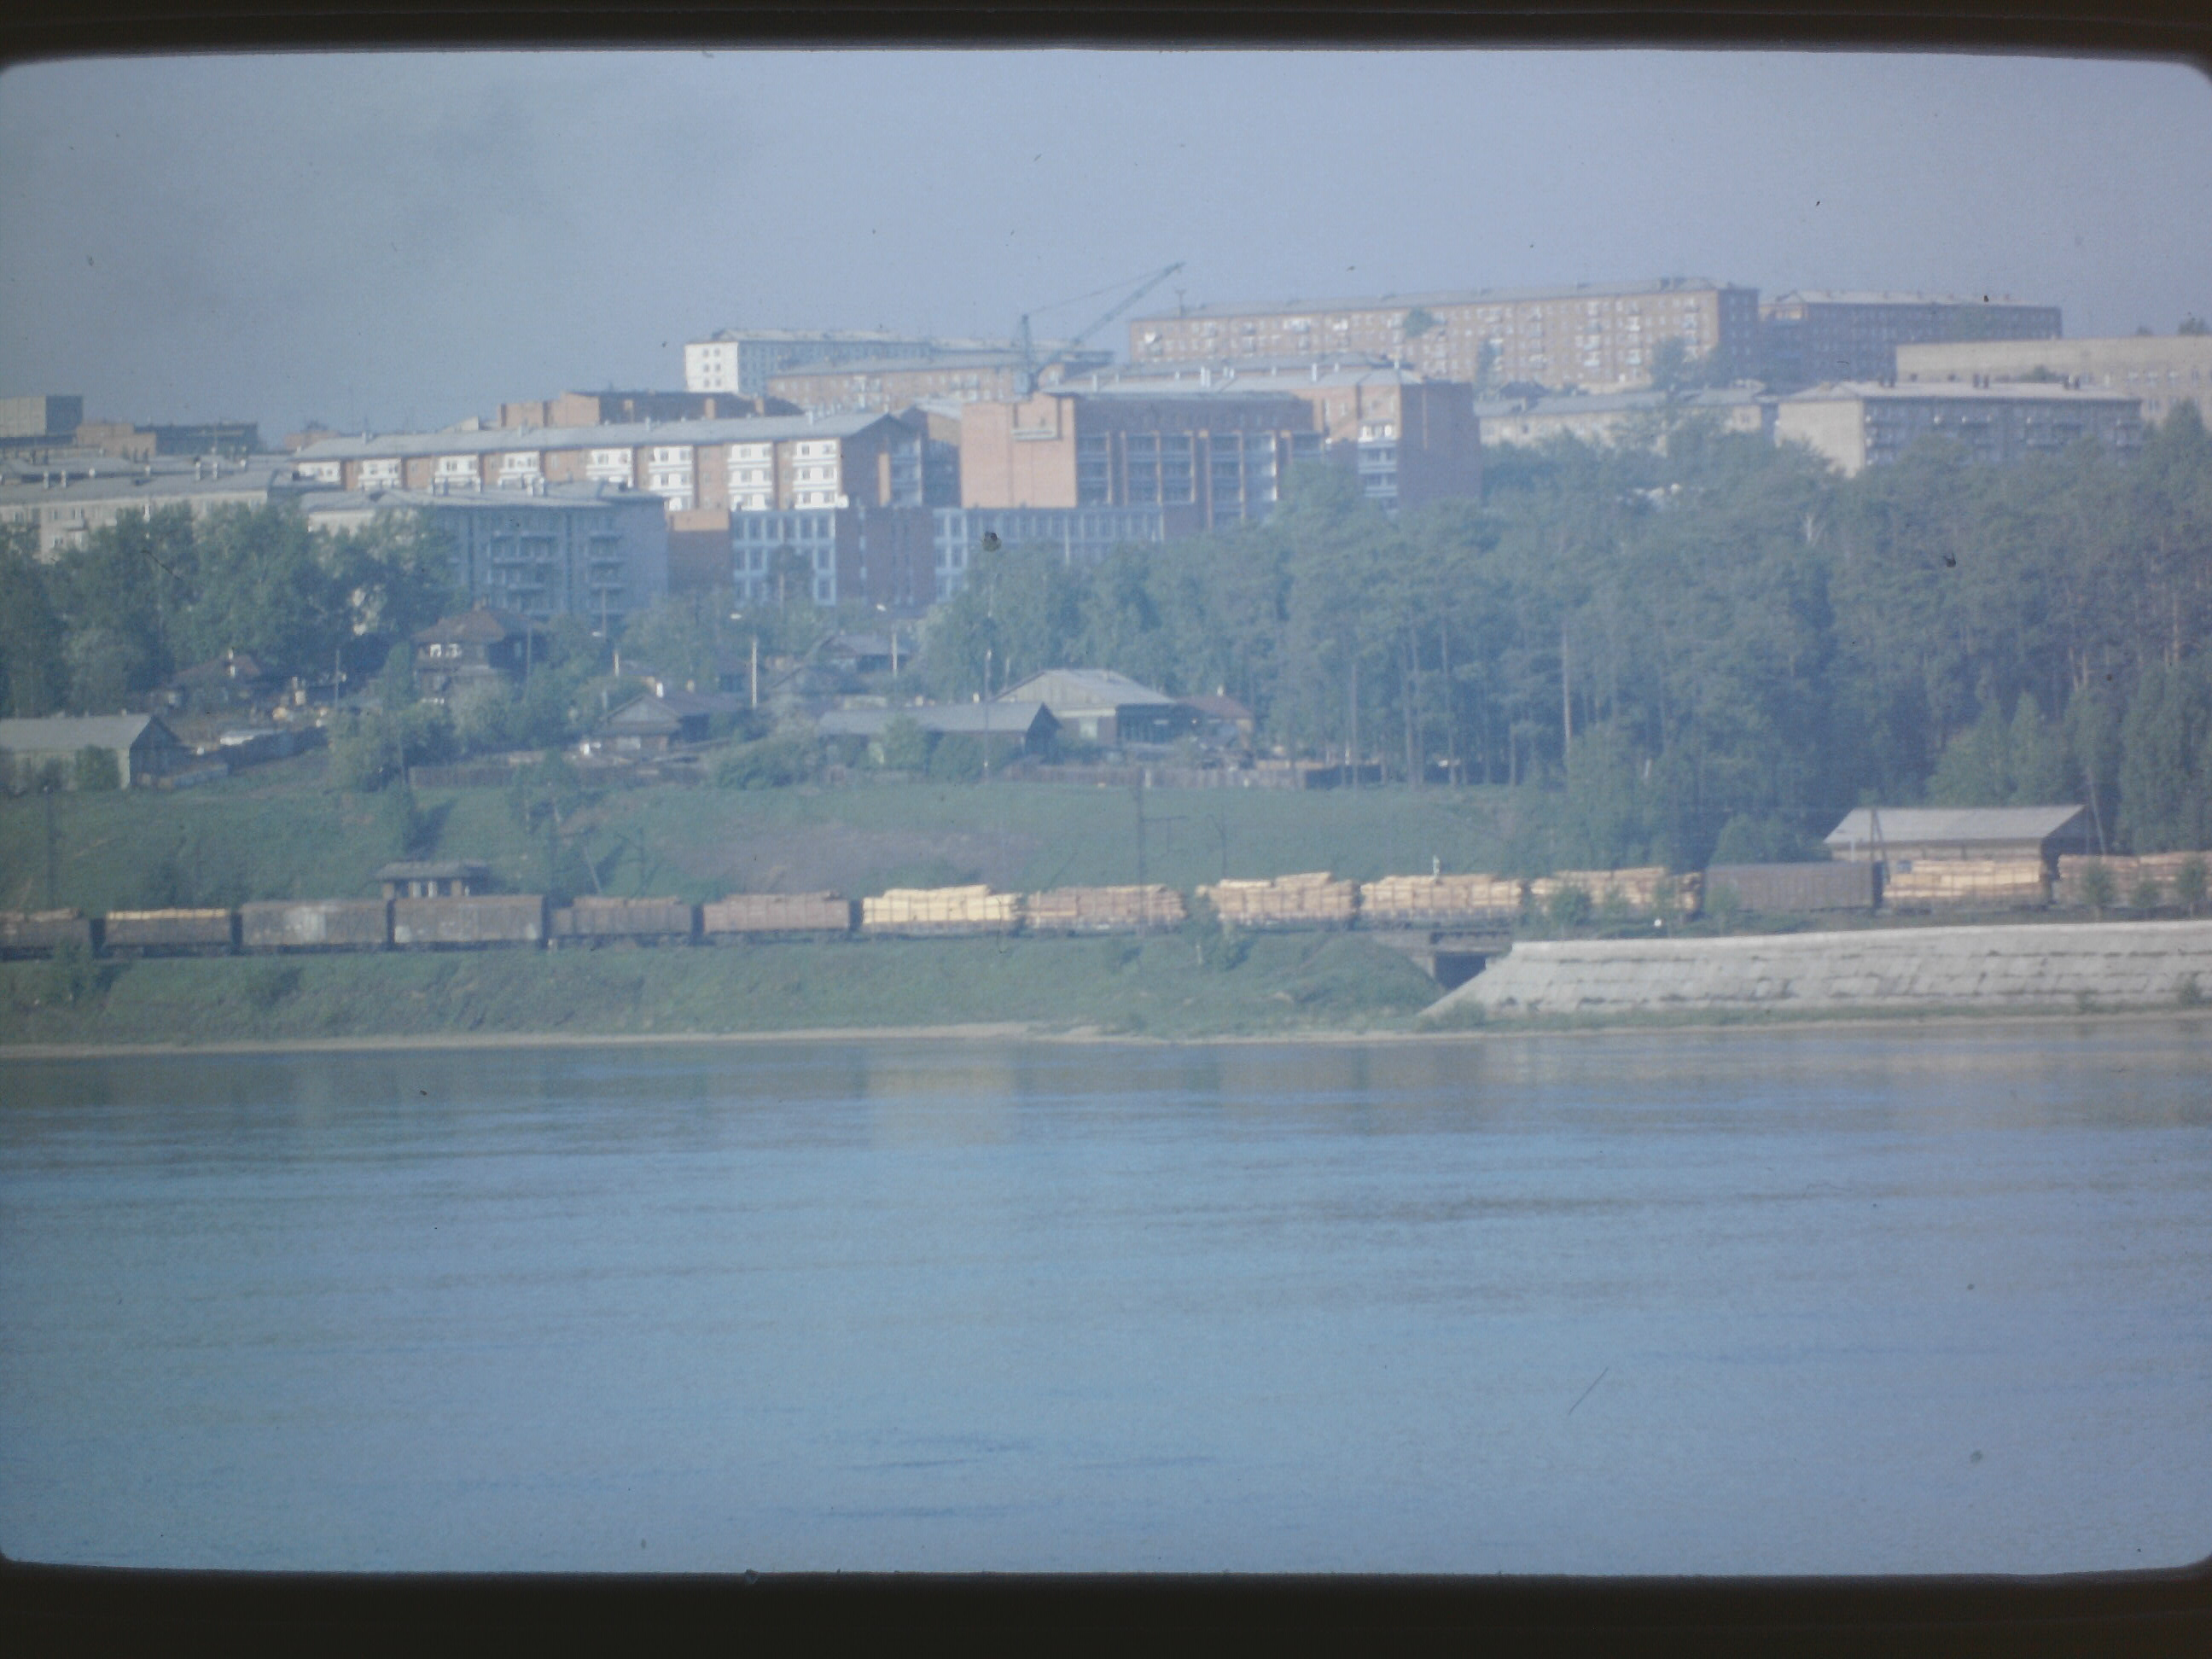 Russia 1983 from the Trans siberian express